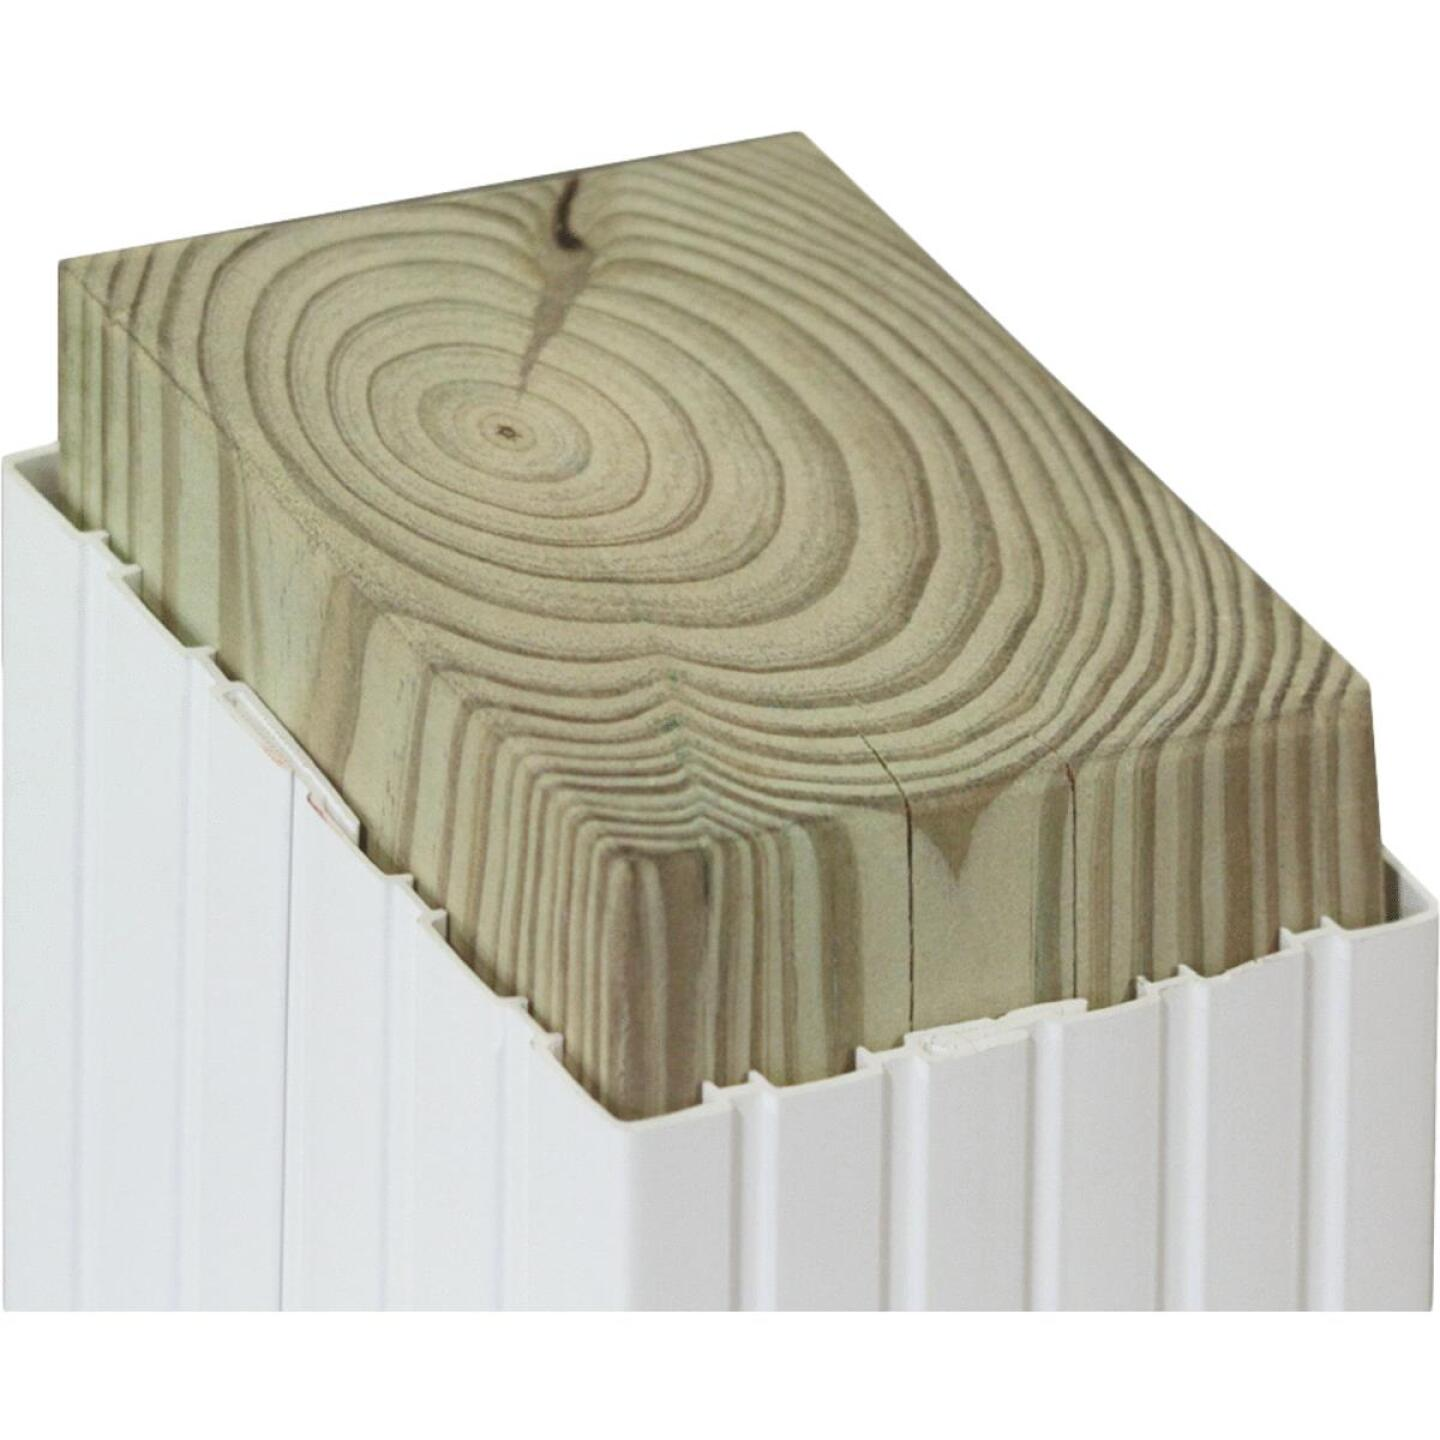 Beechdale 4 In. W x 4 In. H x 102 In. L White PVC Fluted Post Wrap Image 2